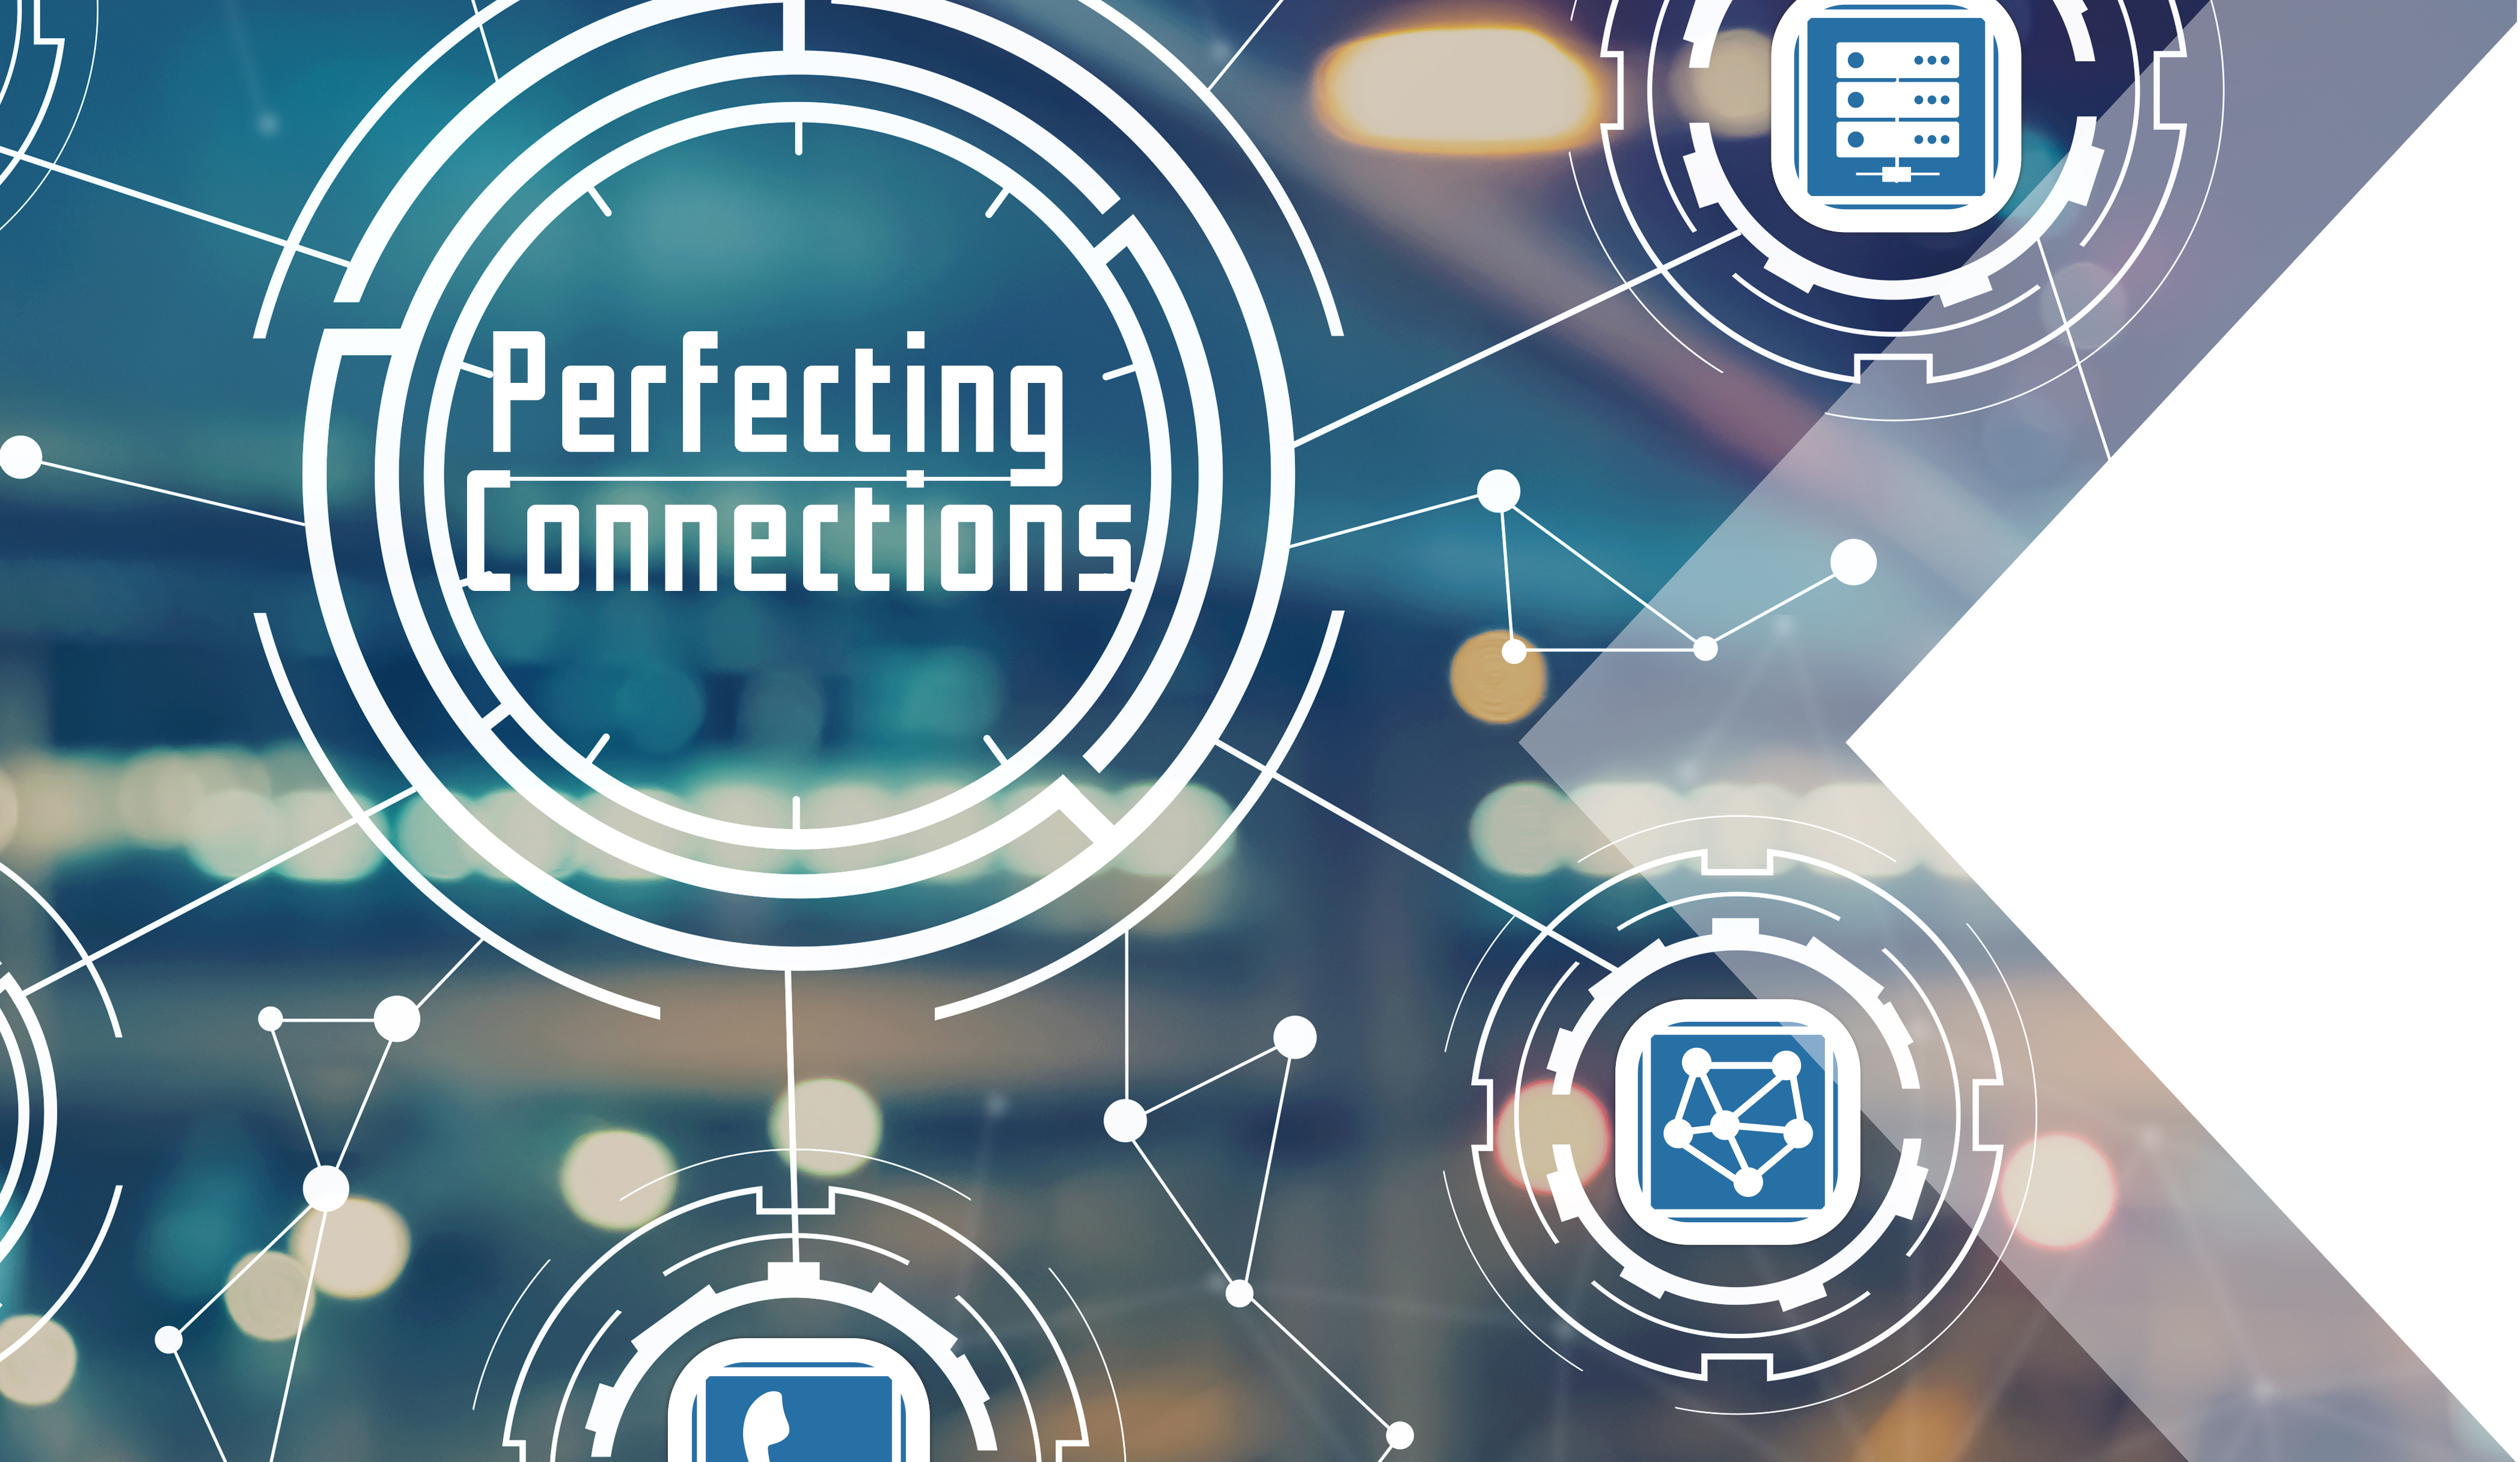 mSuite Matrix Networks offers new phone systems, connectivity services, and managed network infrastructure